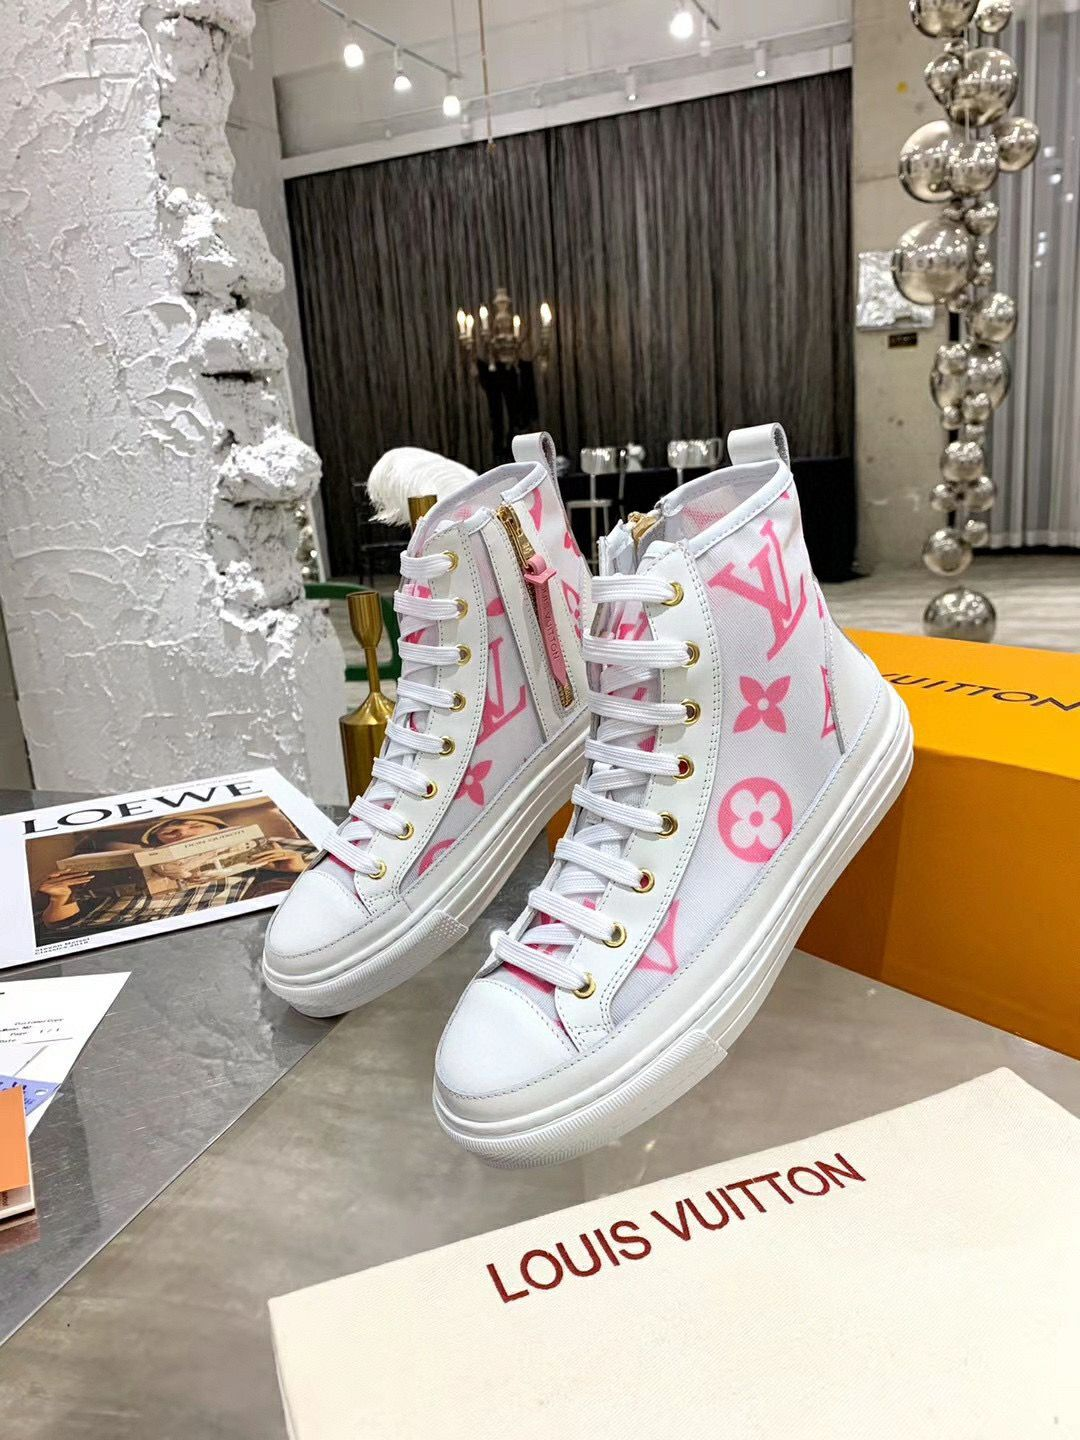 Louis Vuitton Shoes LV10577 Pink